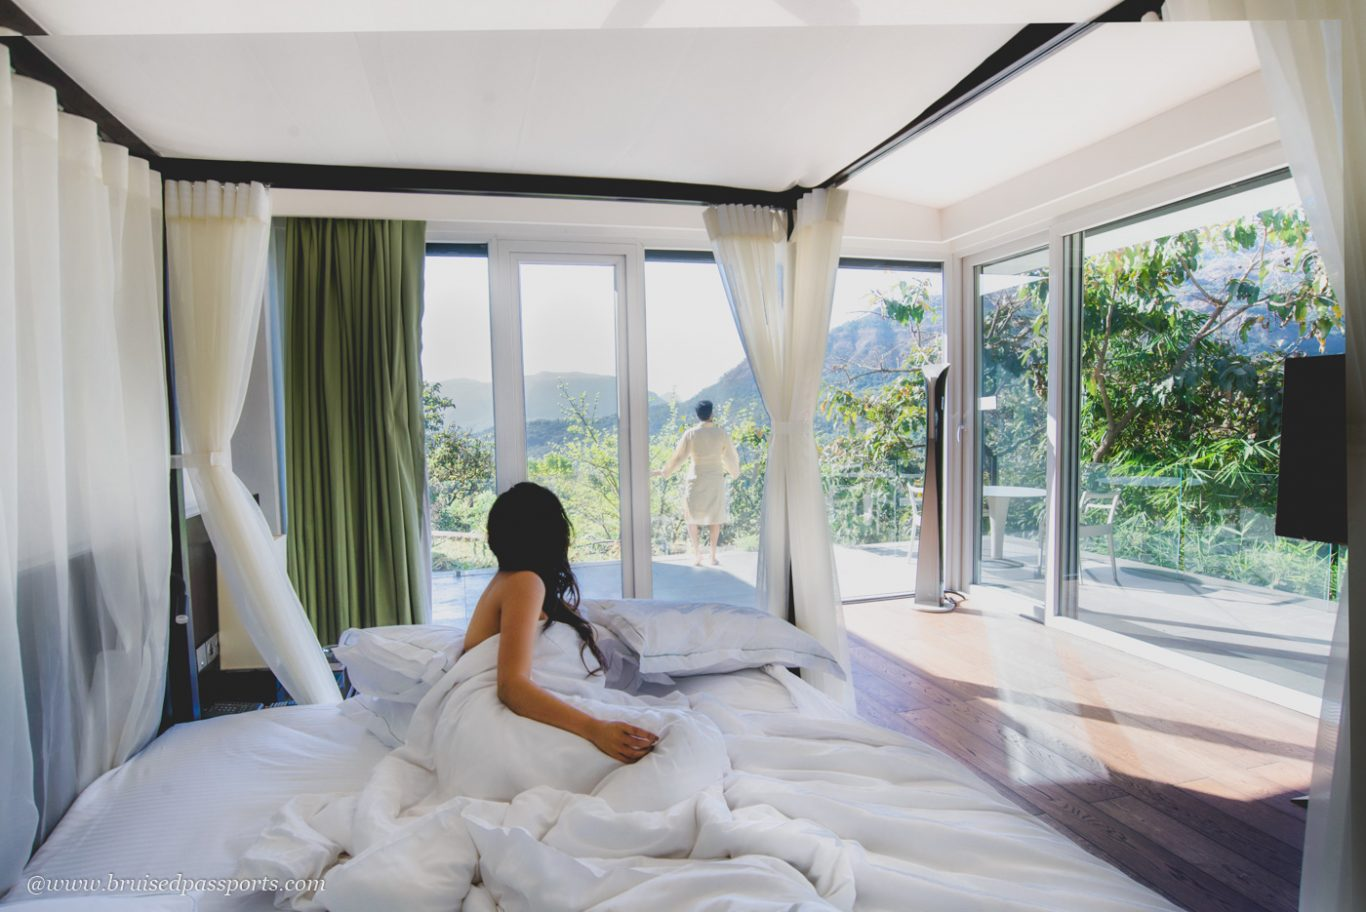 Hilton Shillim Retreat bedroom overlooking hills